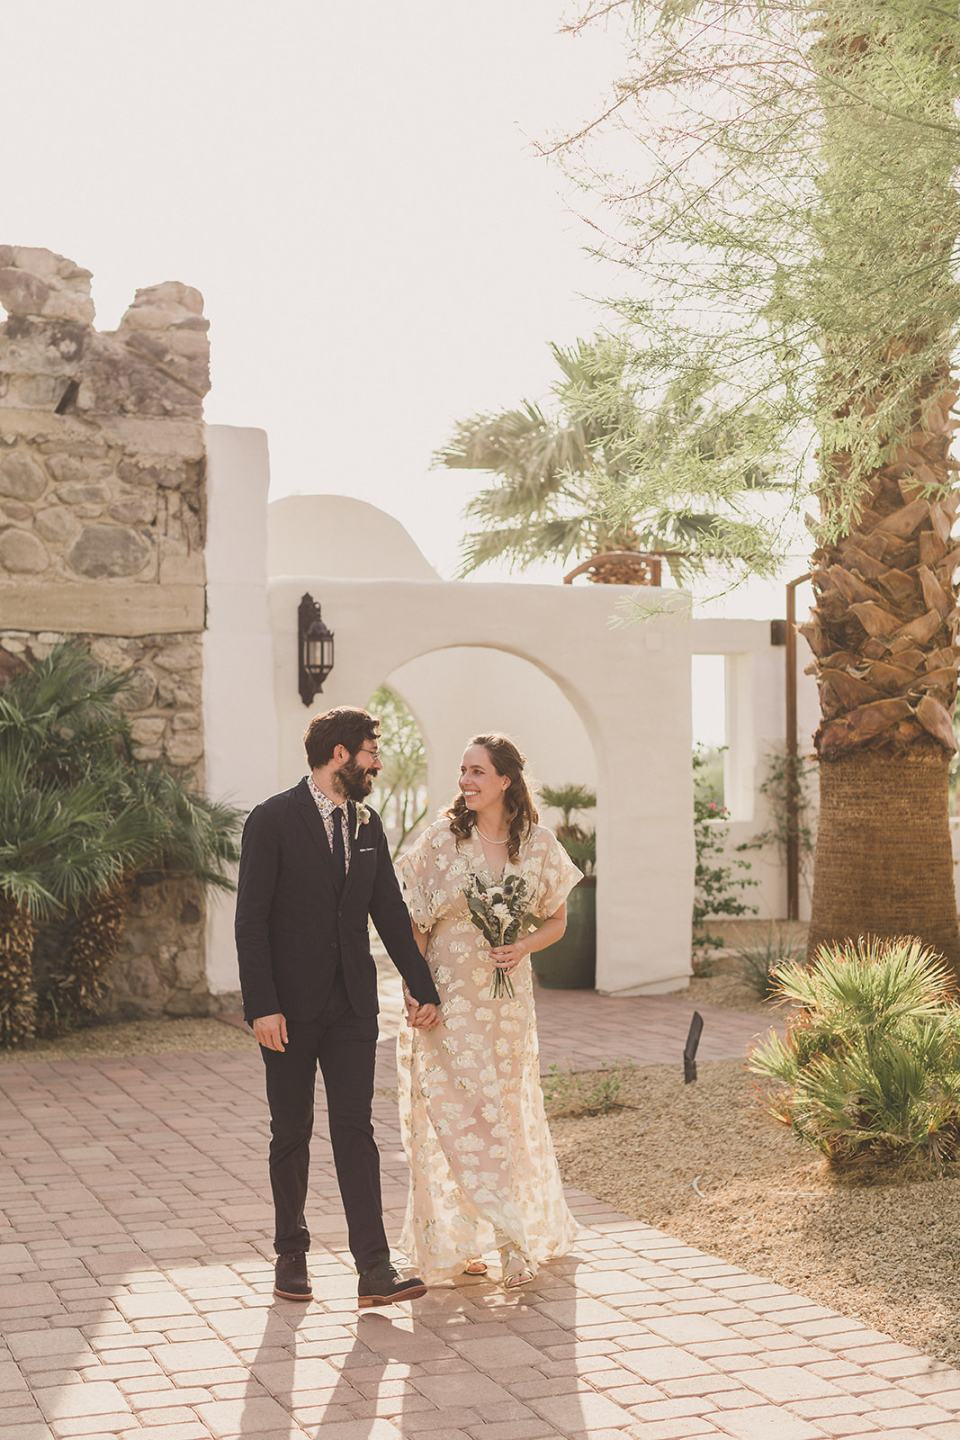 bride and groom walk together at the Oasis in Death Valley